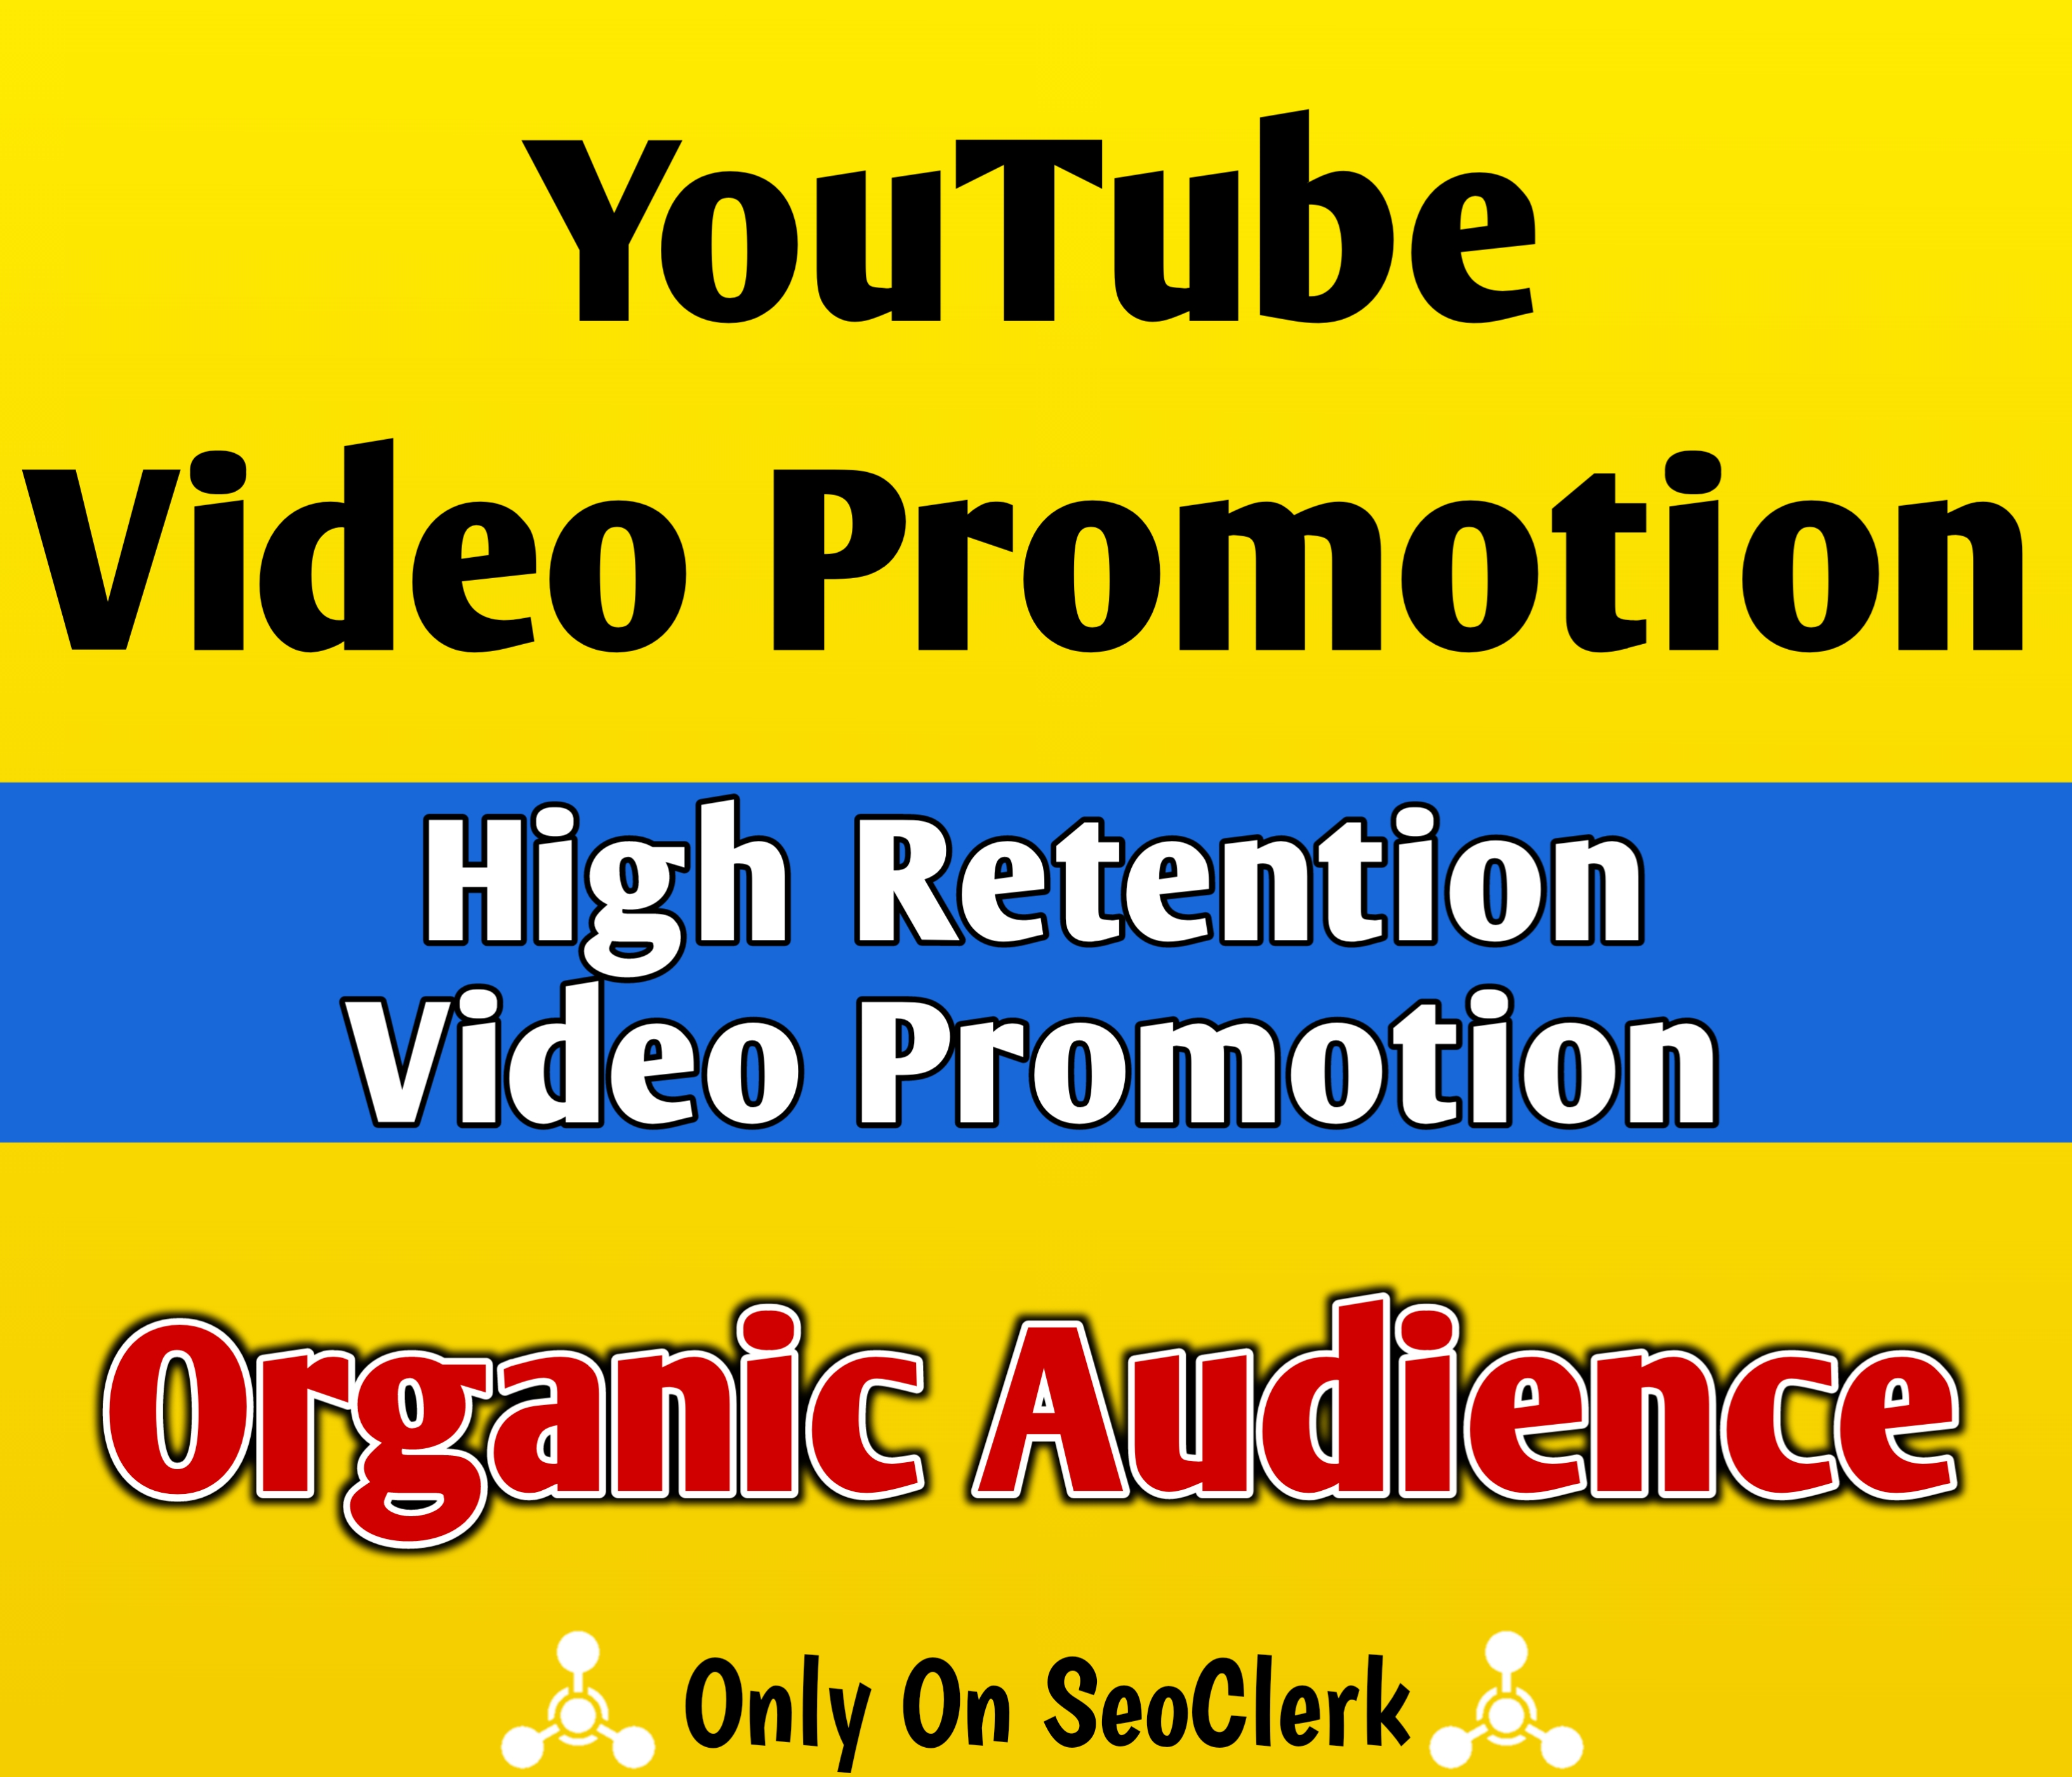 YouTube Video Promotion Via Organic Social Audience